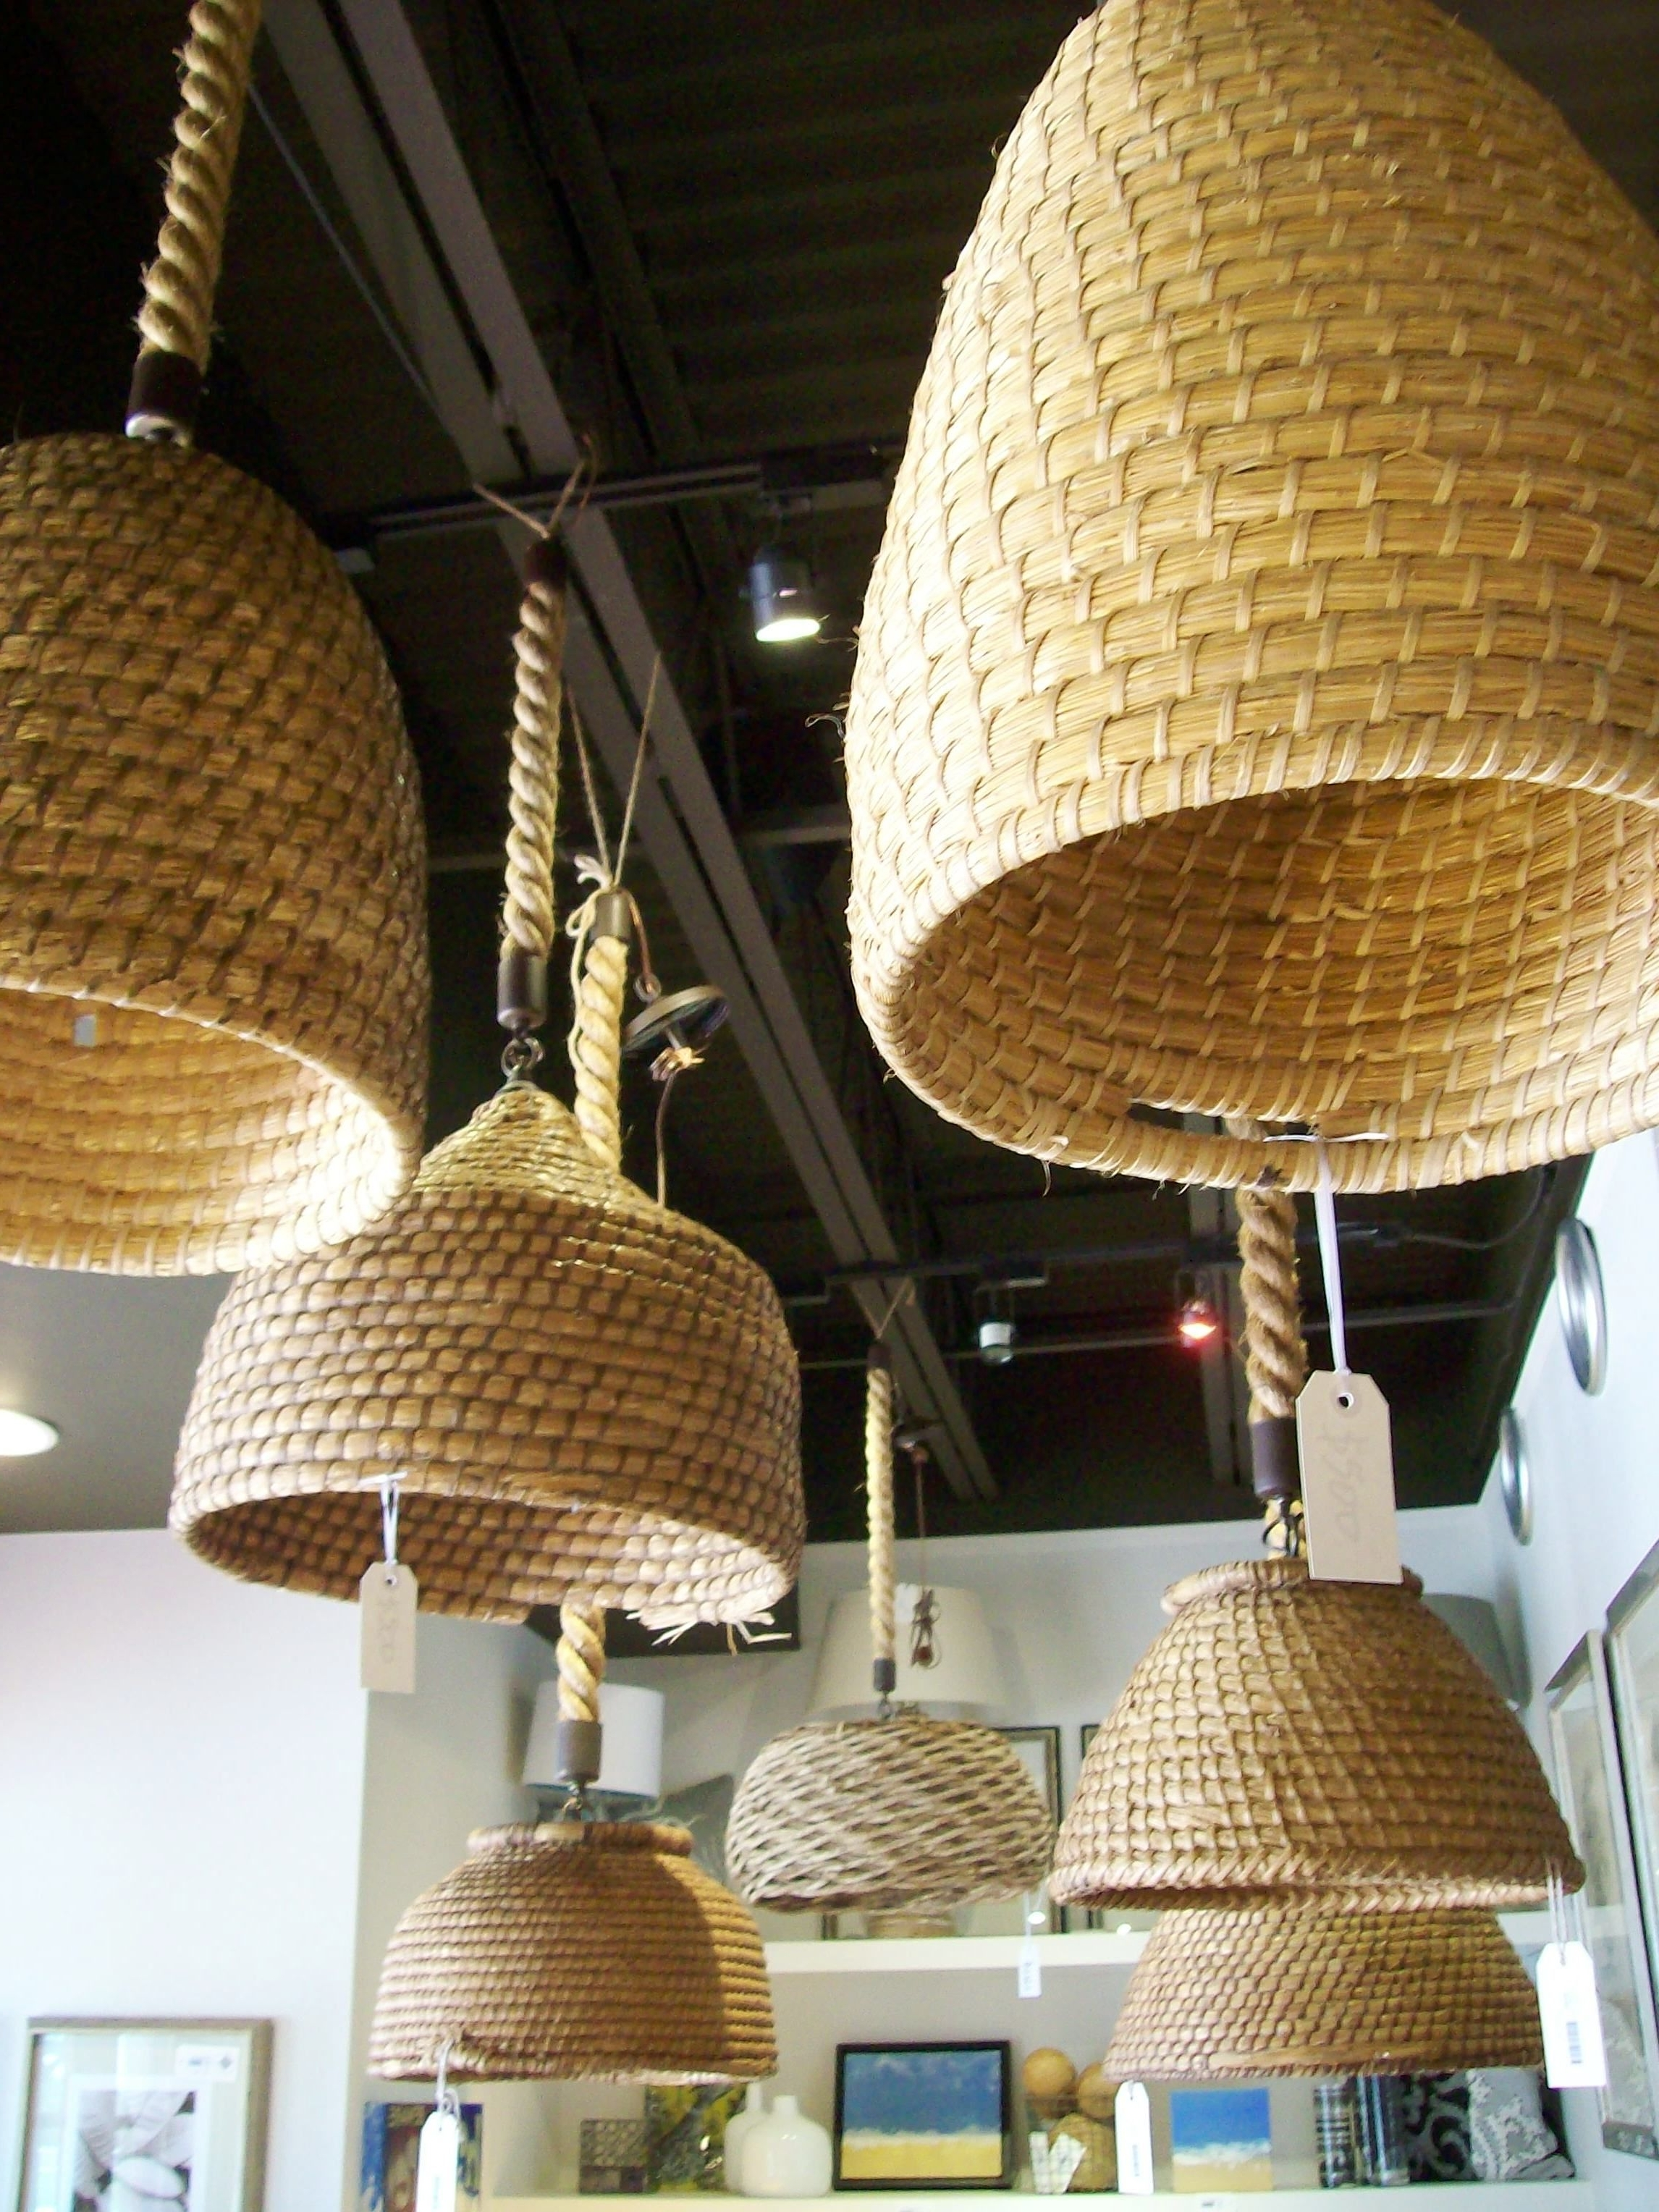 Display, Lights And Pertaining To Most Recent Outdoor Hanging Basket Lights (View 12 of 20)